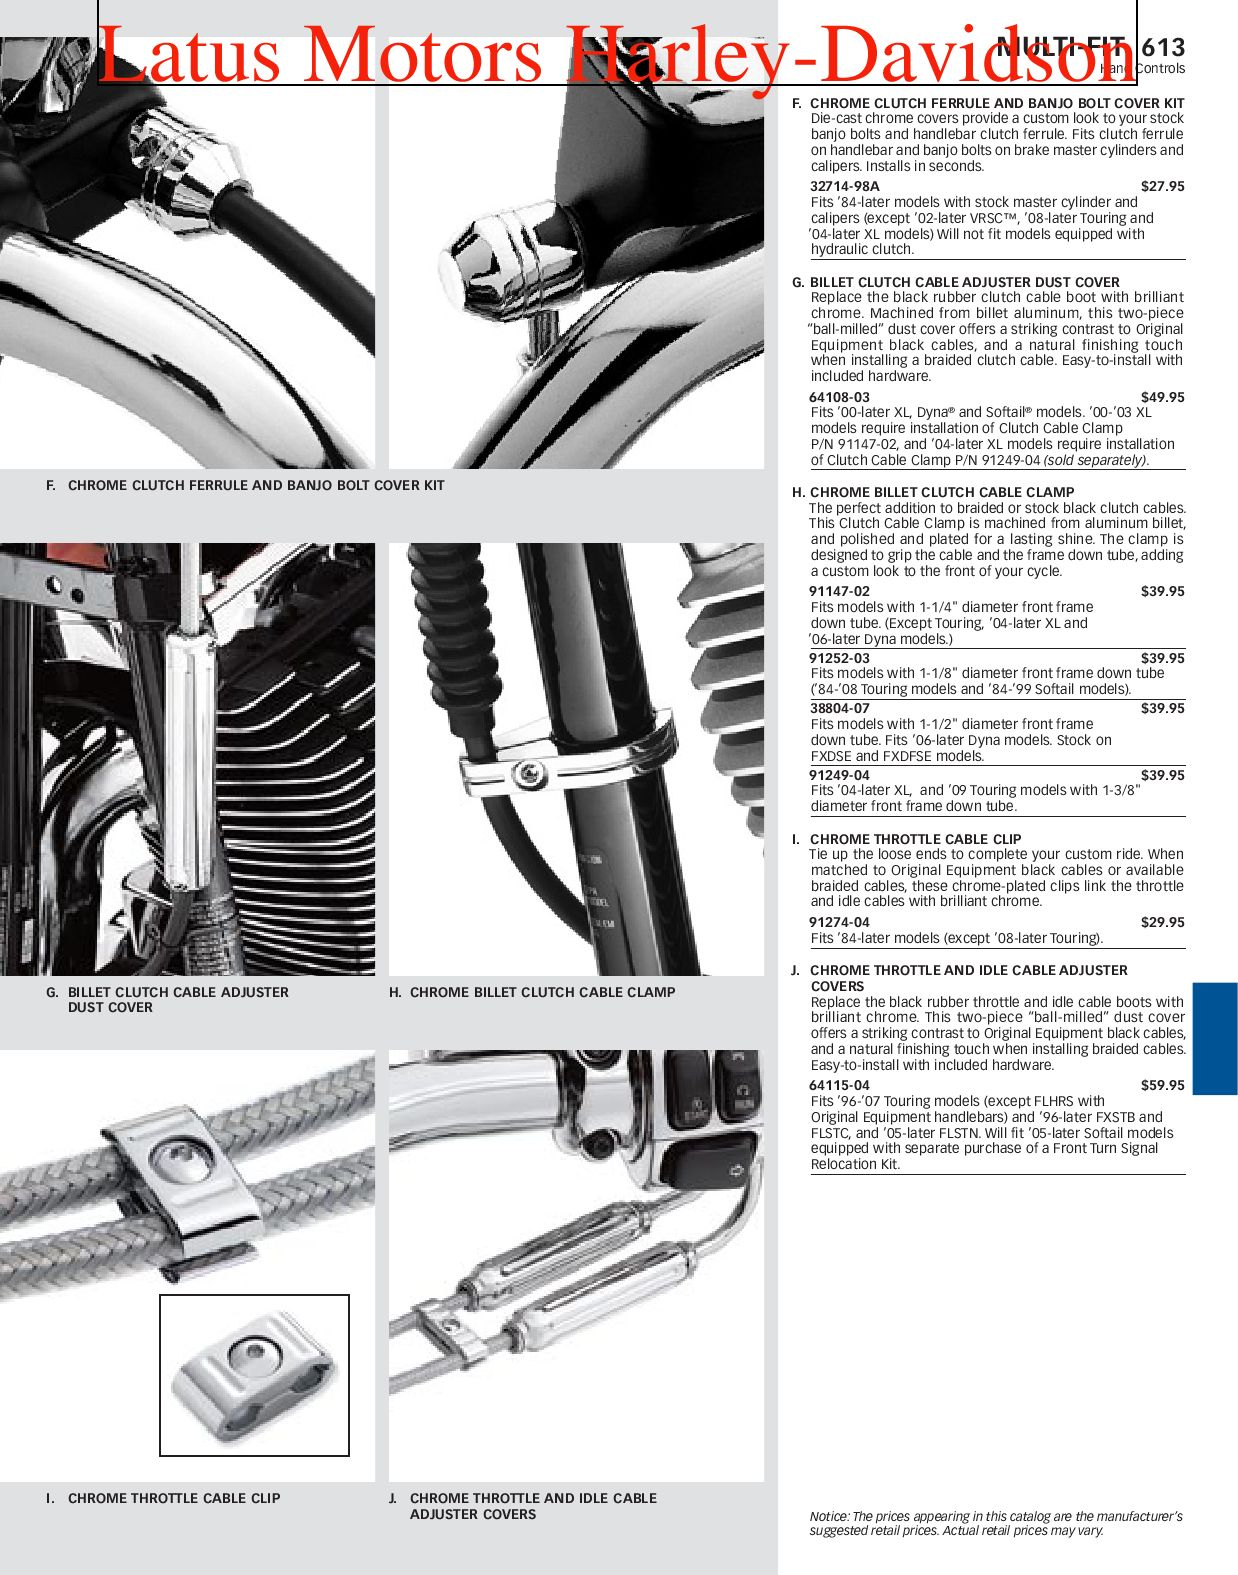 Part 2 Harley-Davidson Parts and Accessories Catalog by